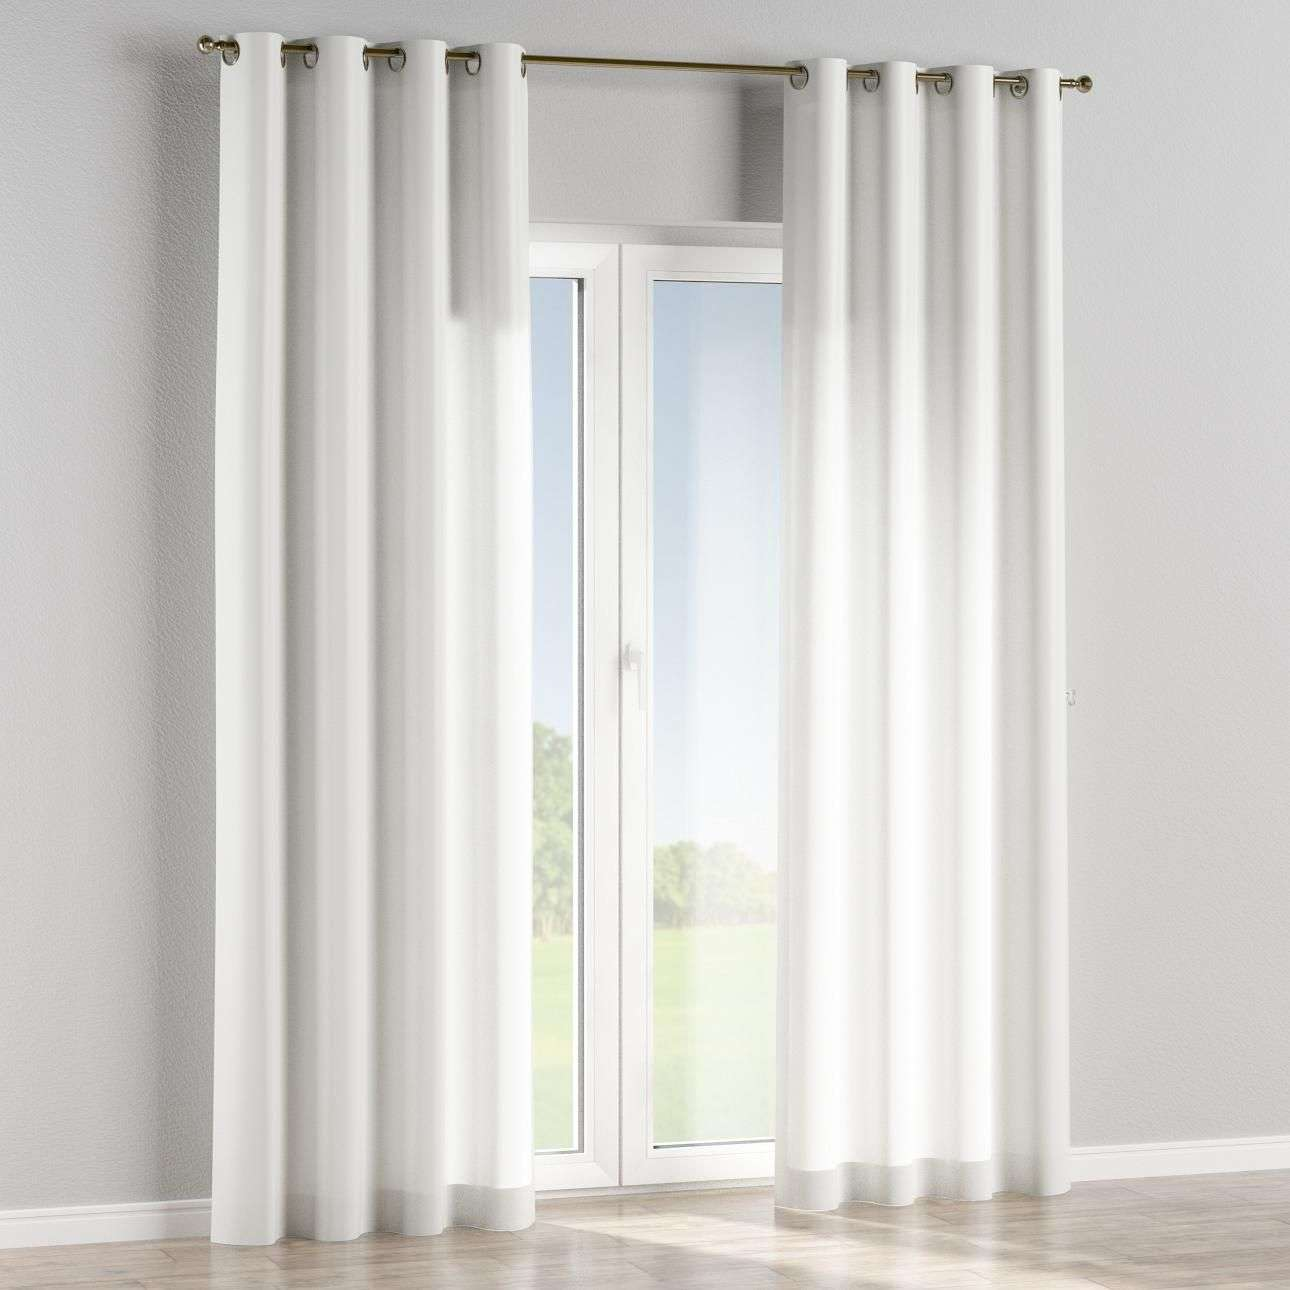 Eyelet lined curtains in collection Venice, fabric: 140-53